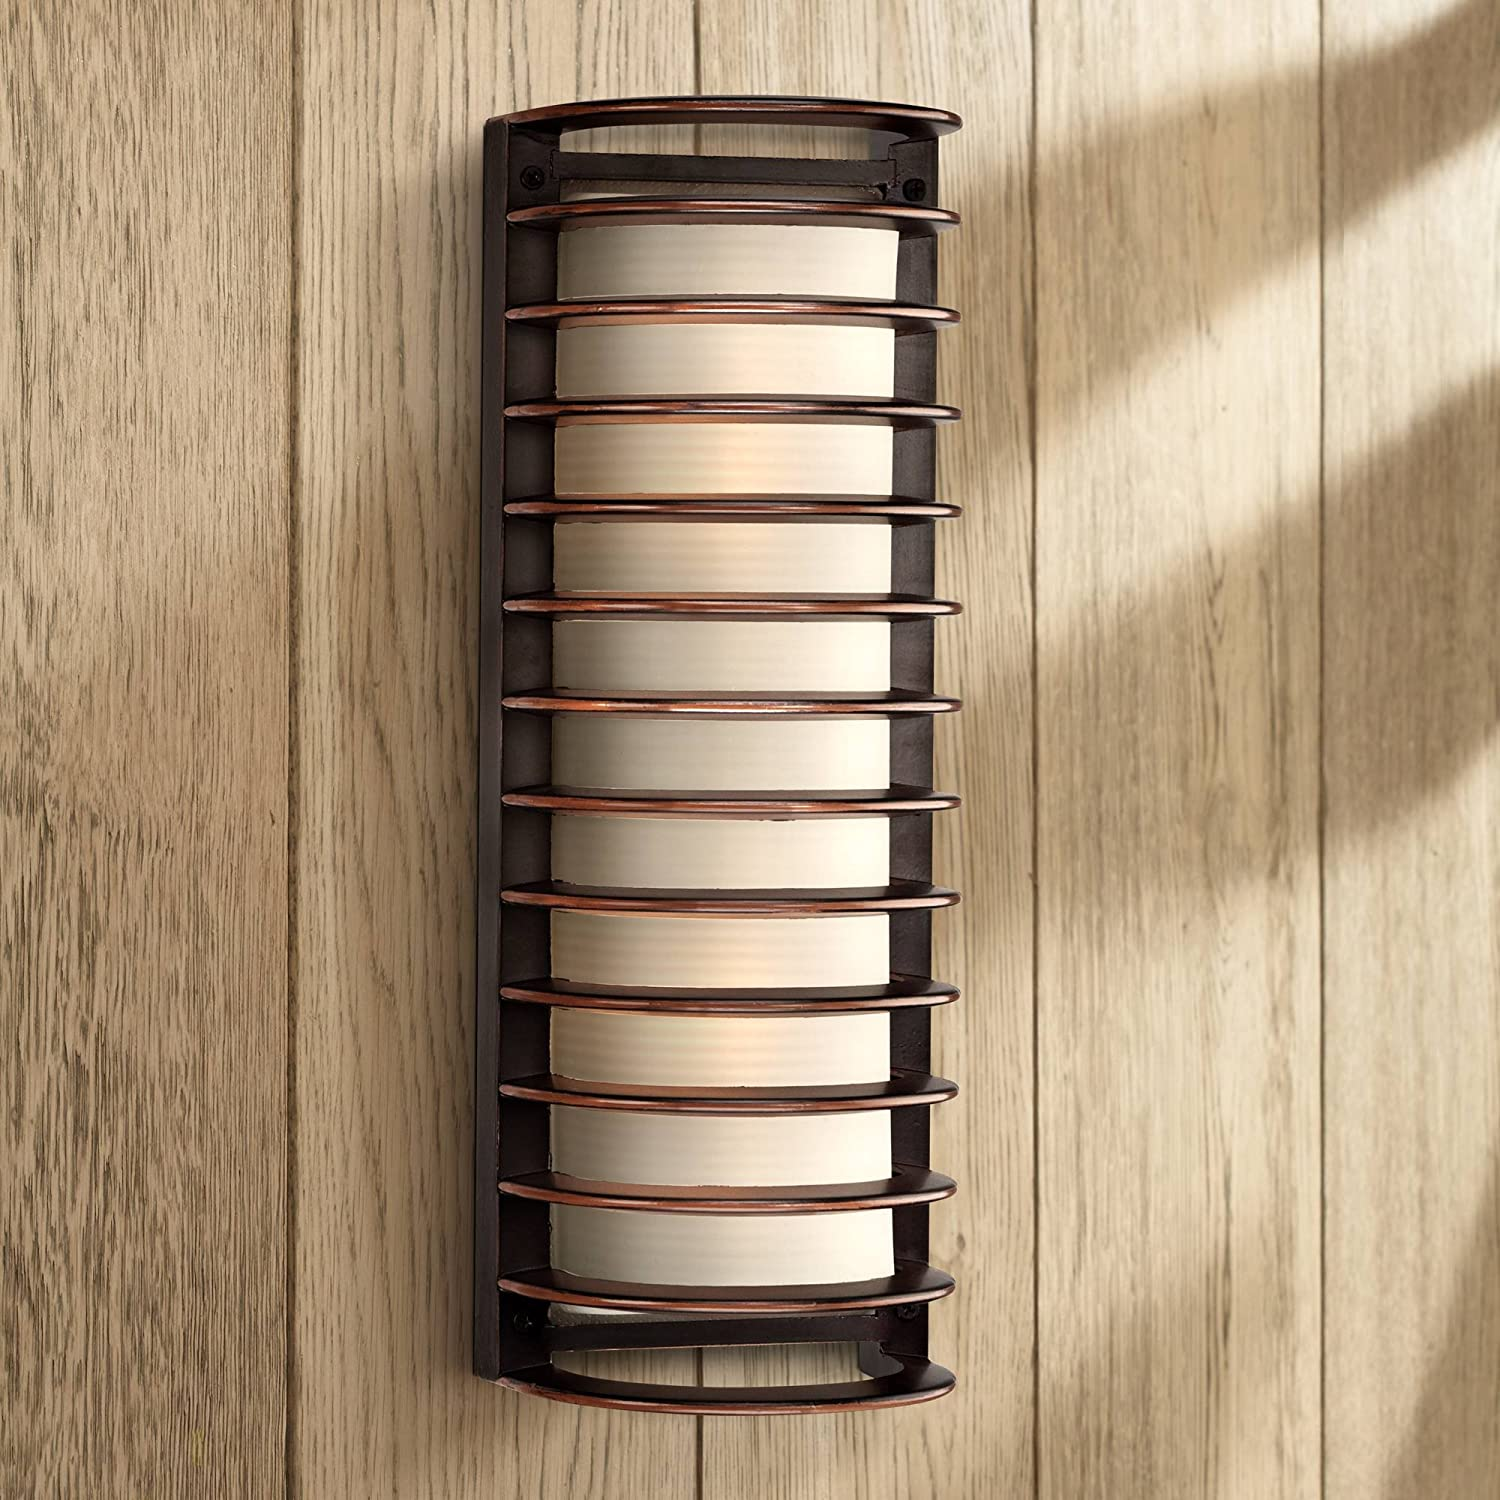 Modern Industrial Sconce Outdoor Wall Limited price Ranking TOP15 sale Light Fixture Bronz Rubbed